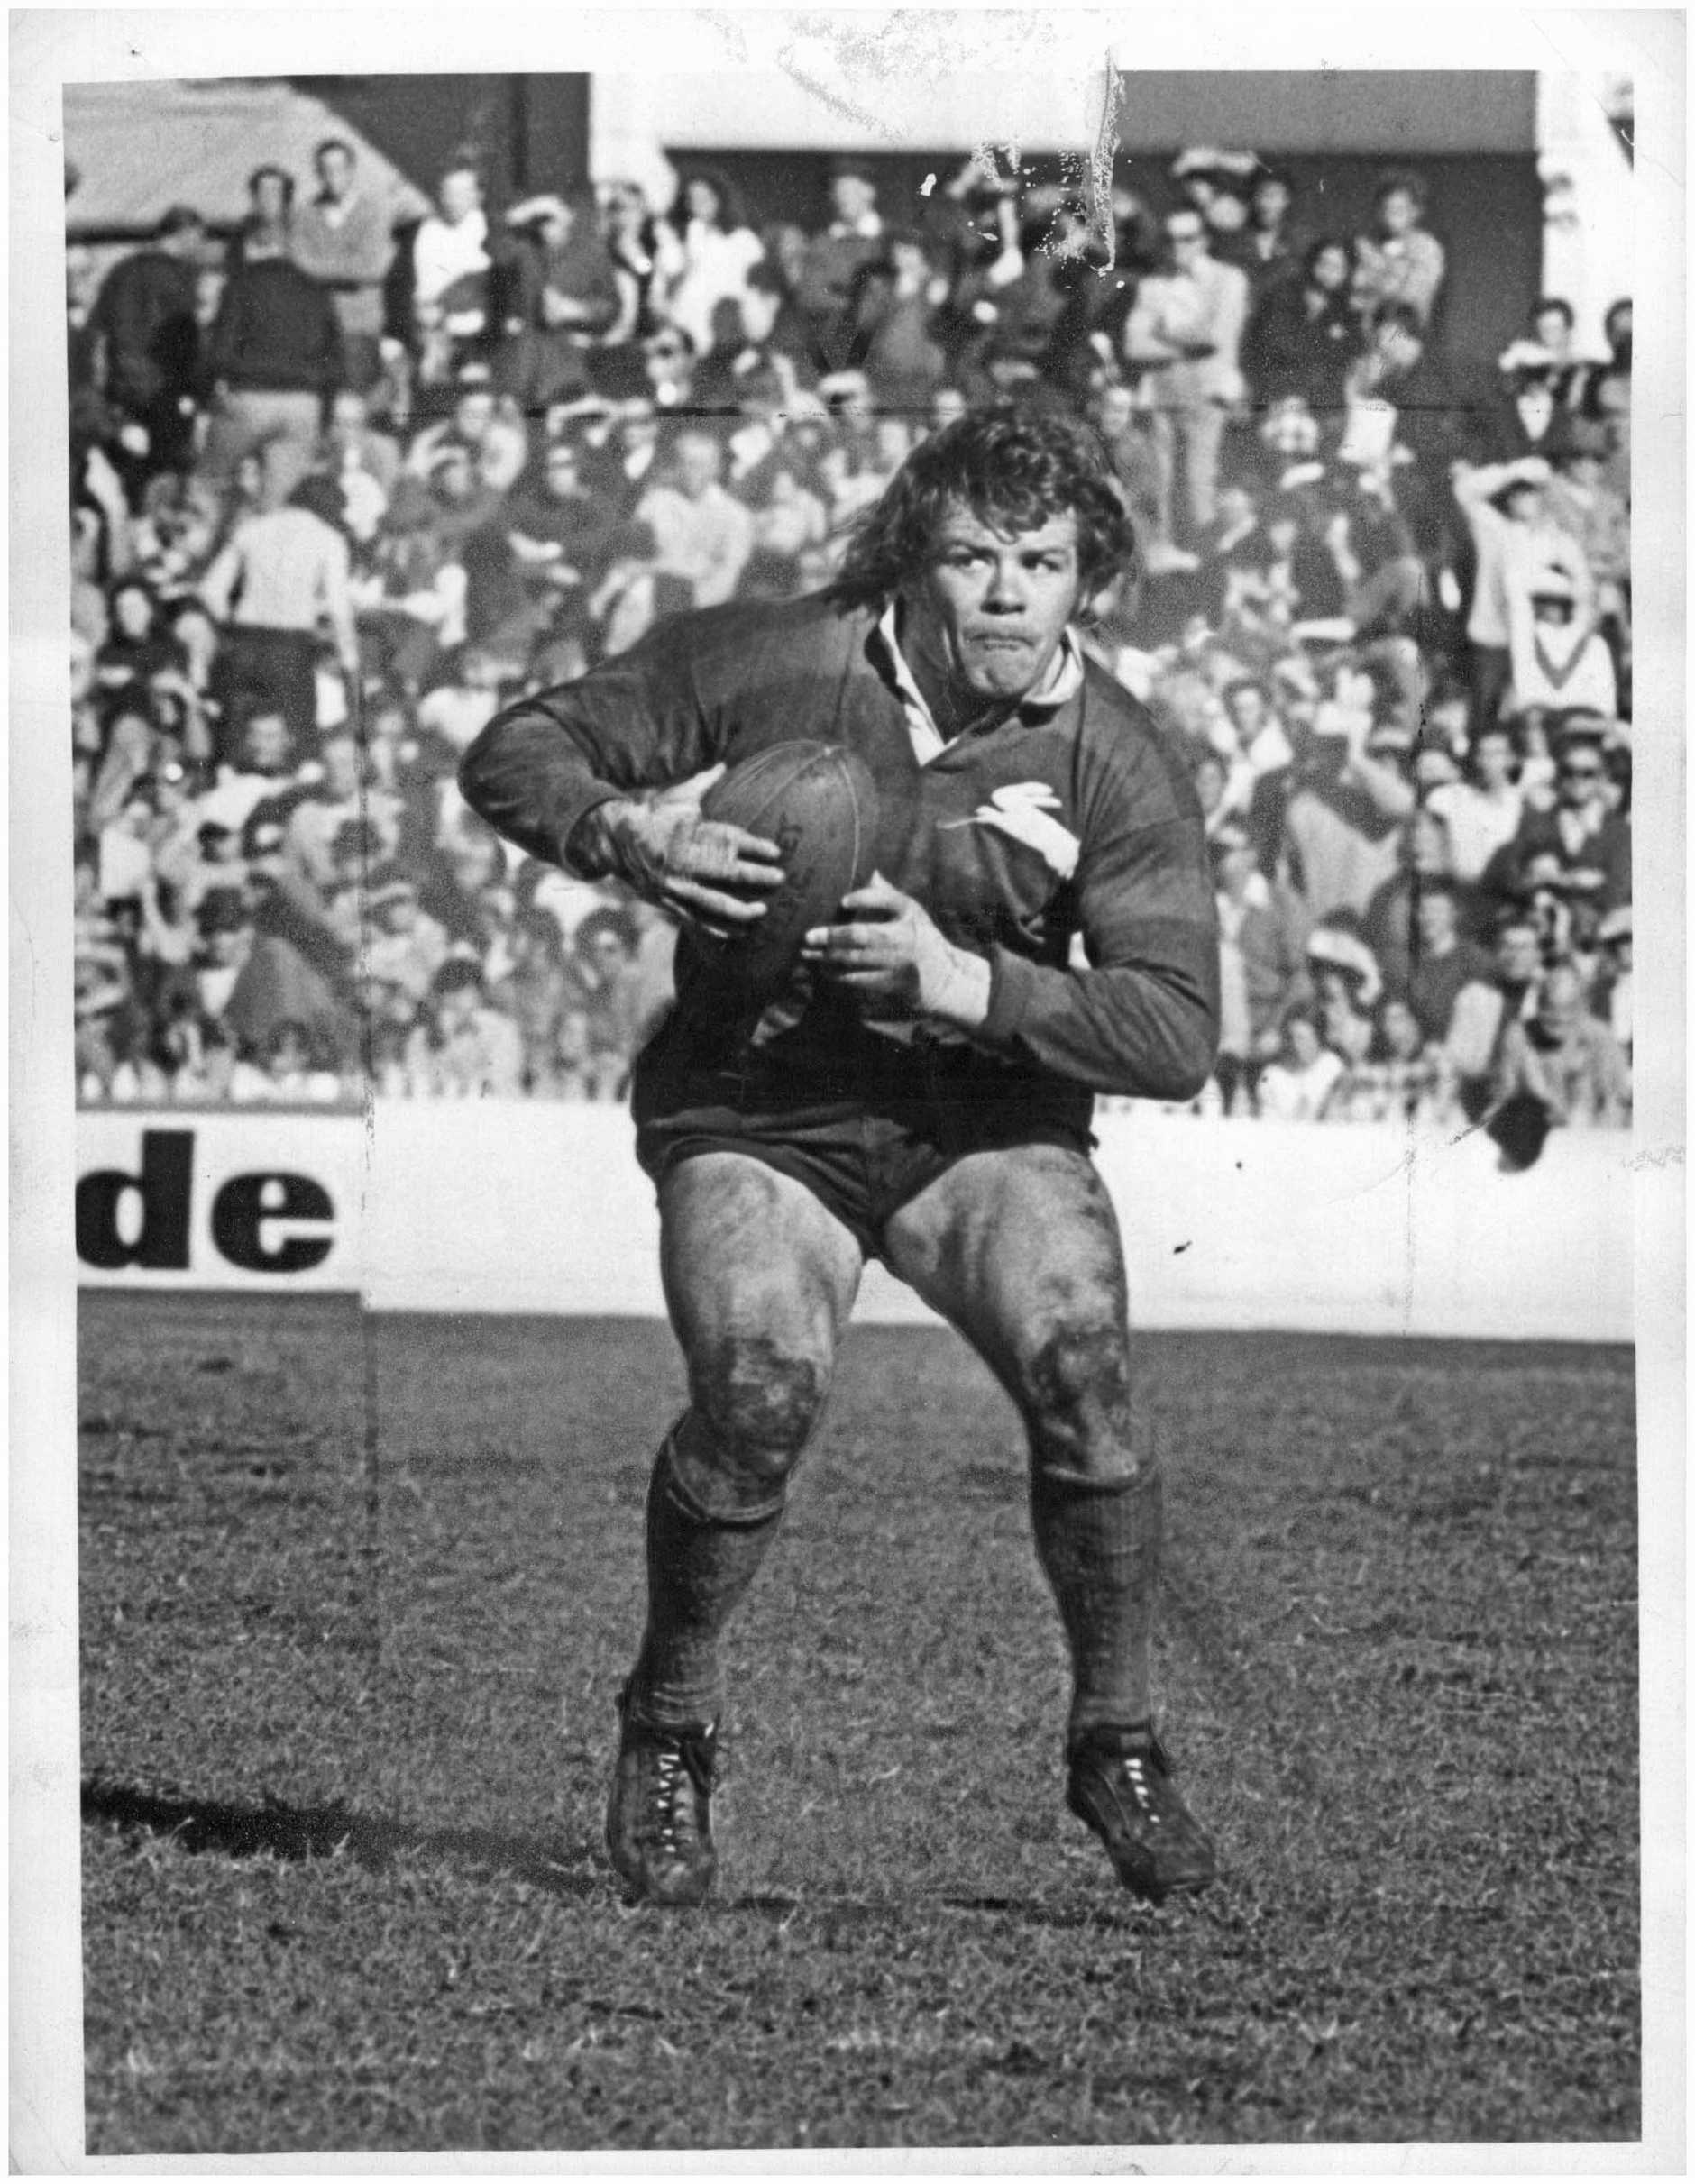 **This picture has a scanned reverse - see associated content at the bottom of the details window**outh Sydney Rabbitohs RL player Bob McCarthy during a match in a 1970s photo.